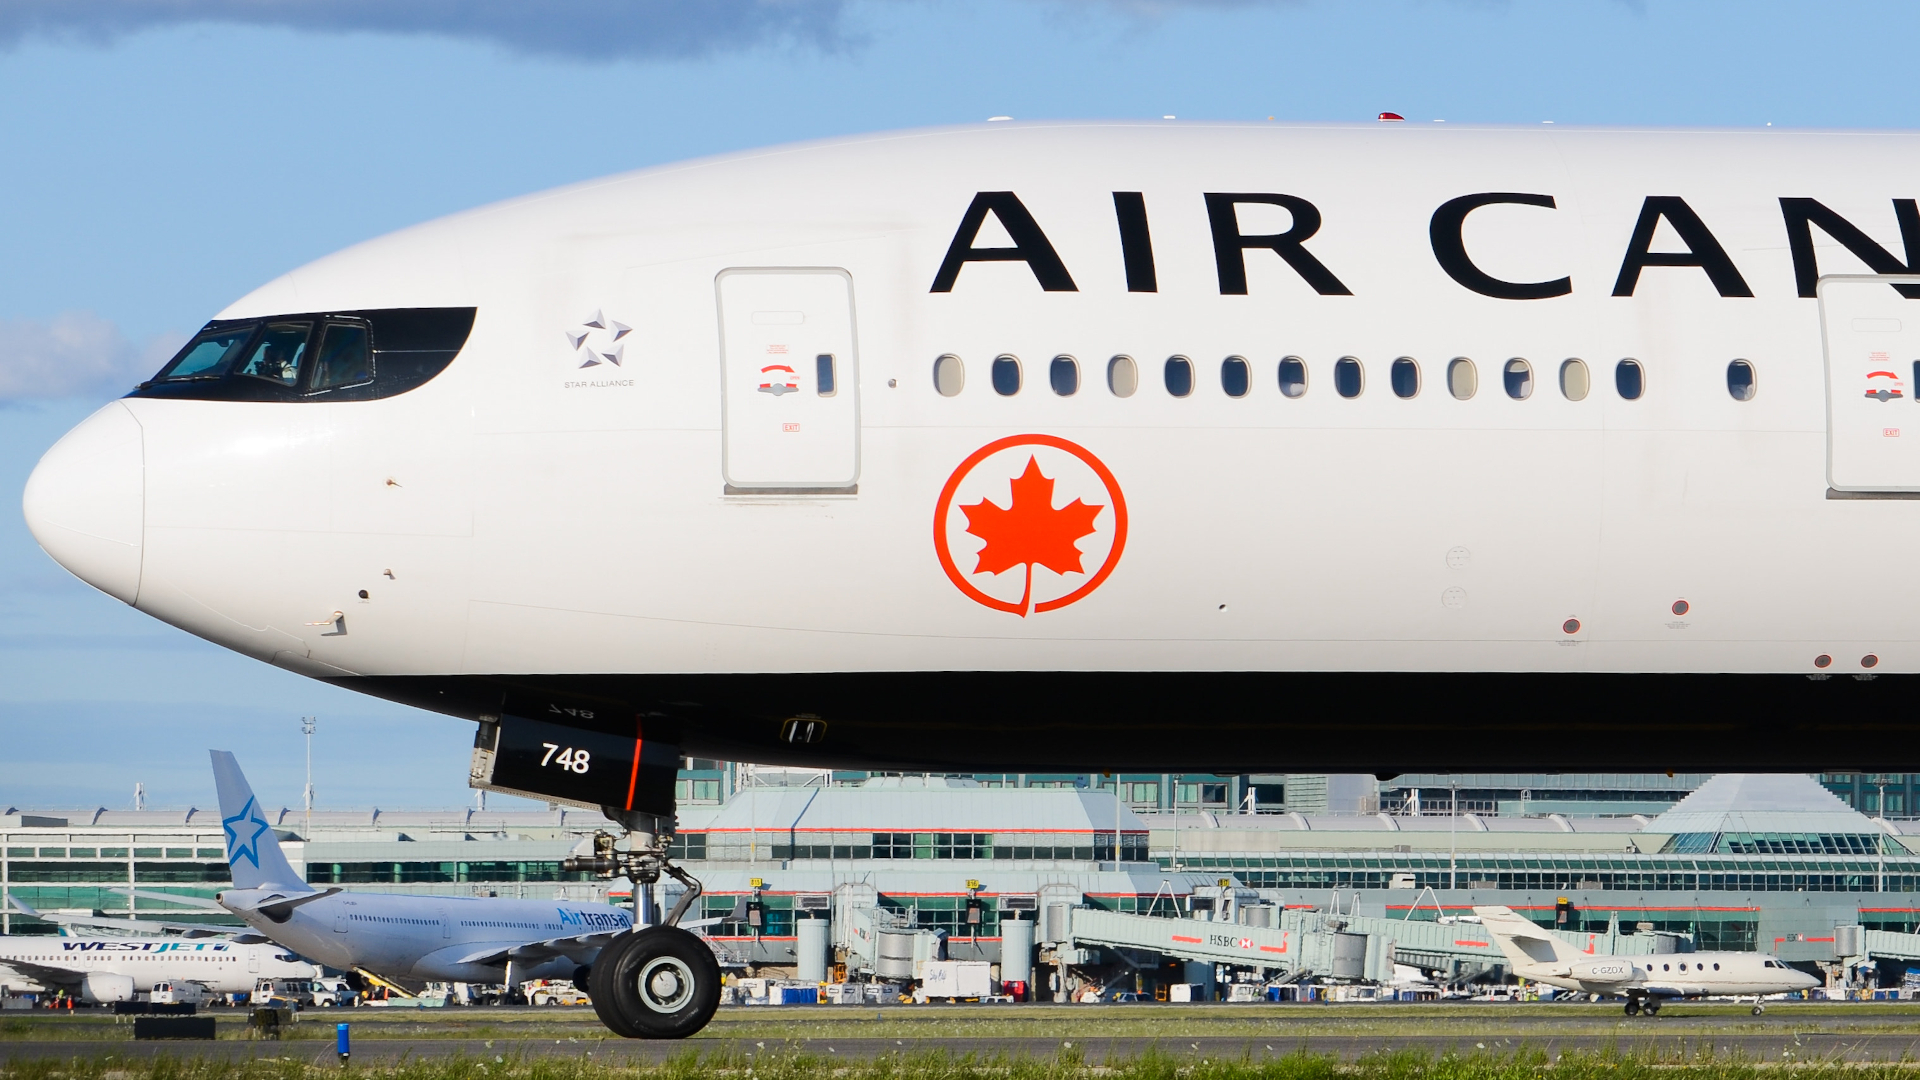 Photo of C-FJZS - Air Canada Boeing 777-300ER at YYZ